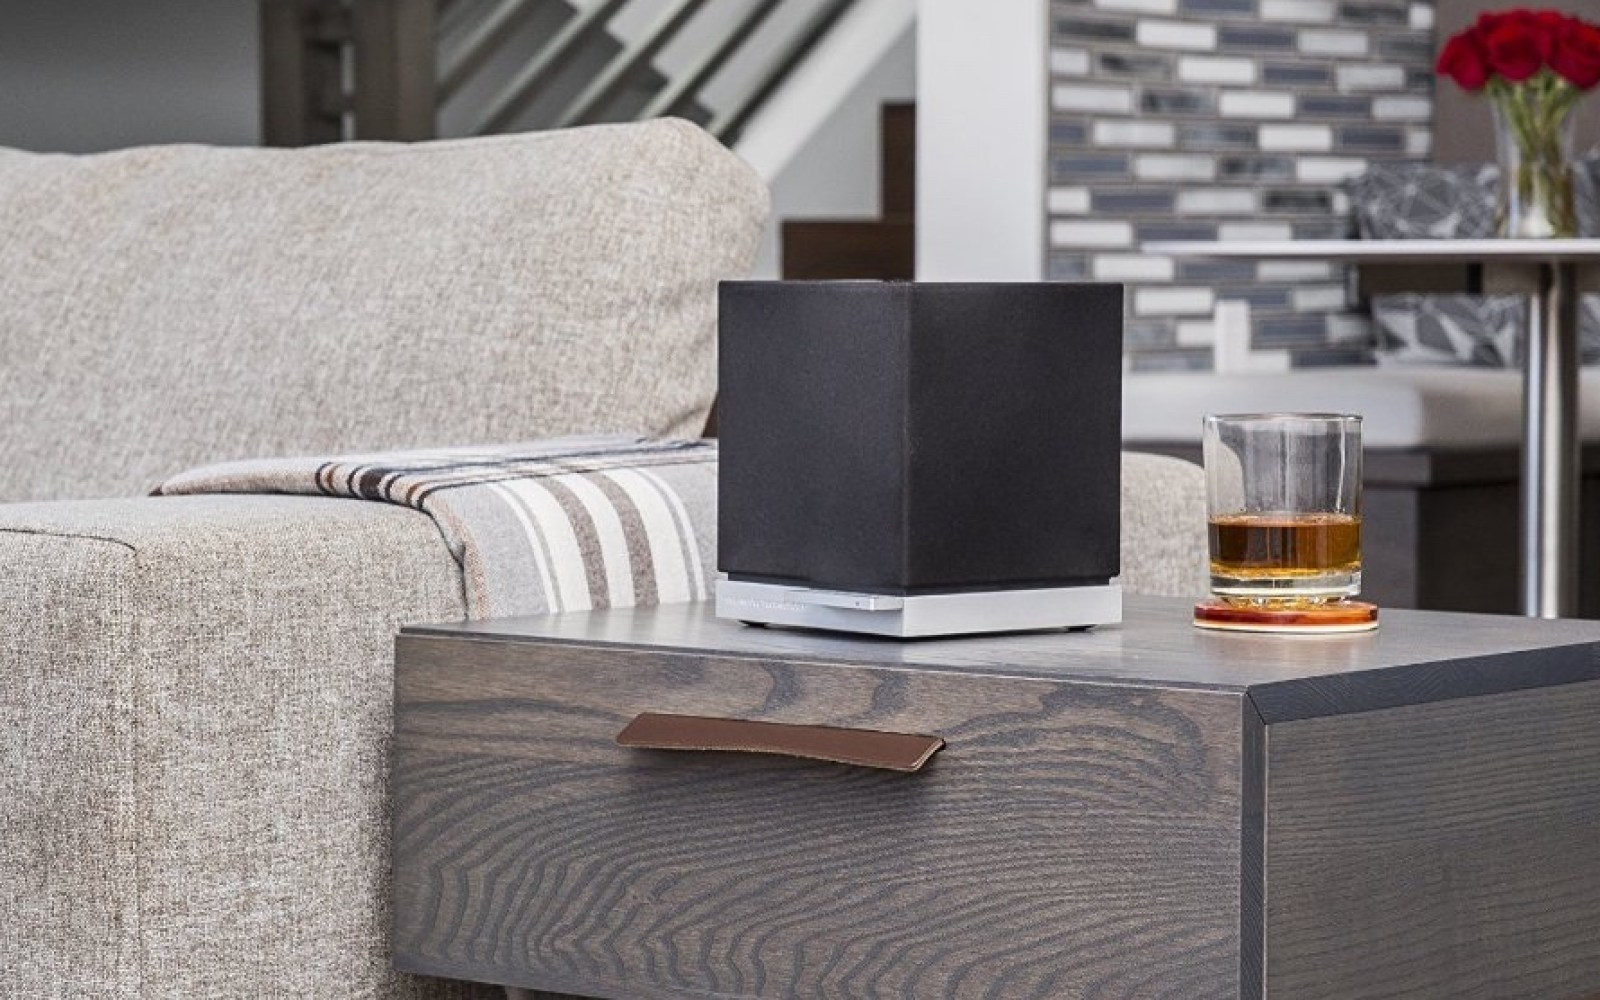 Review: Definitive W7 + Play-Fi, hands on with an AirPlay competitor for home wireless music